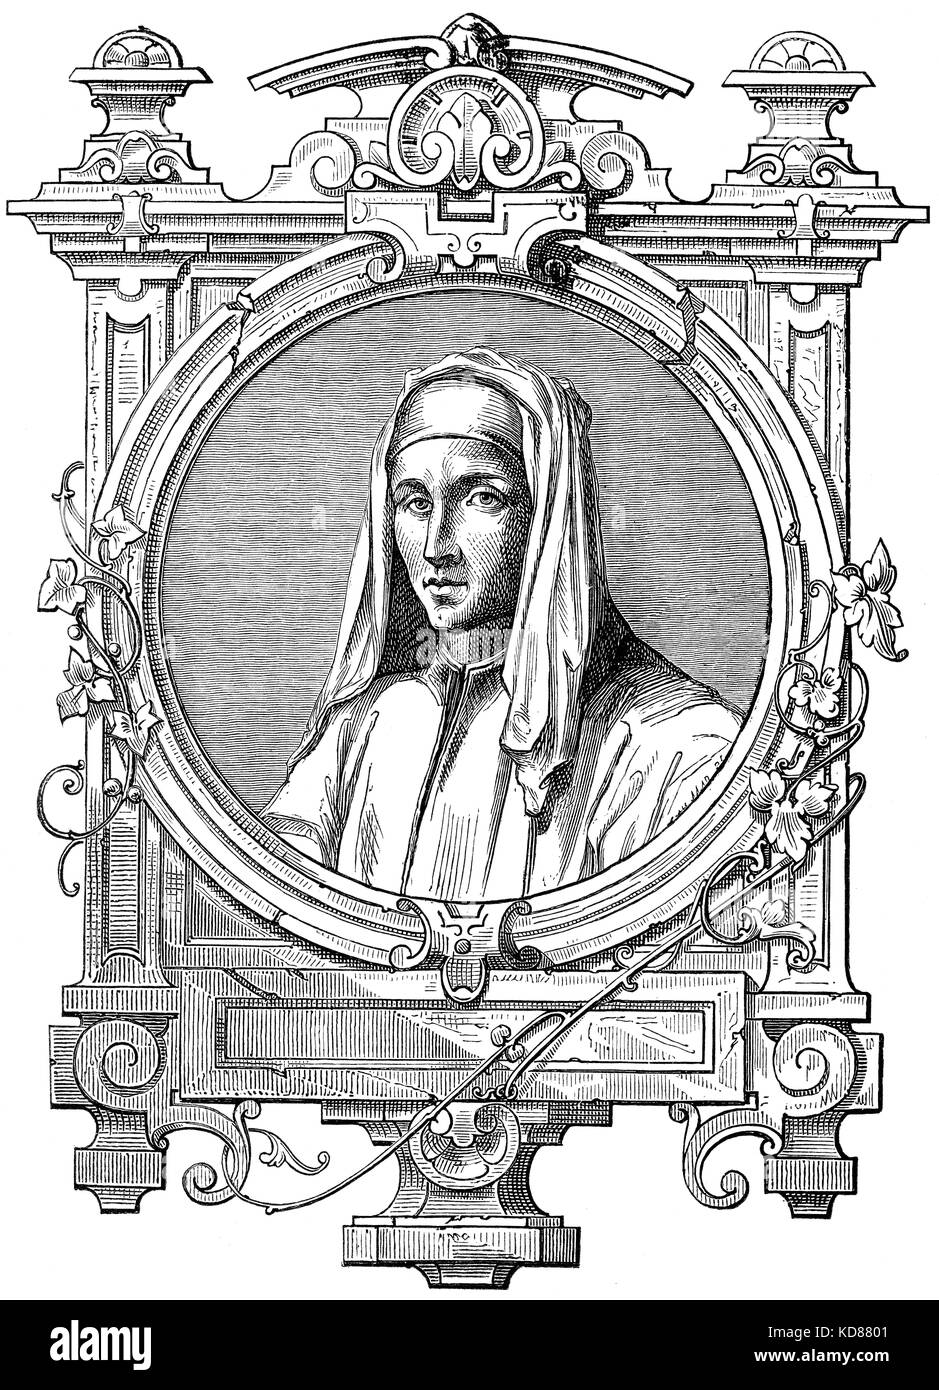 Guido of Arezzo, 992 – after 1033, an Italian music theorist of the Medieval era - Stock Image